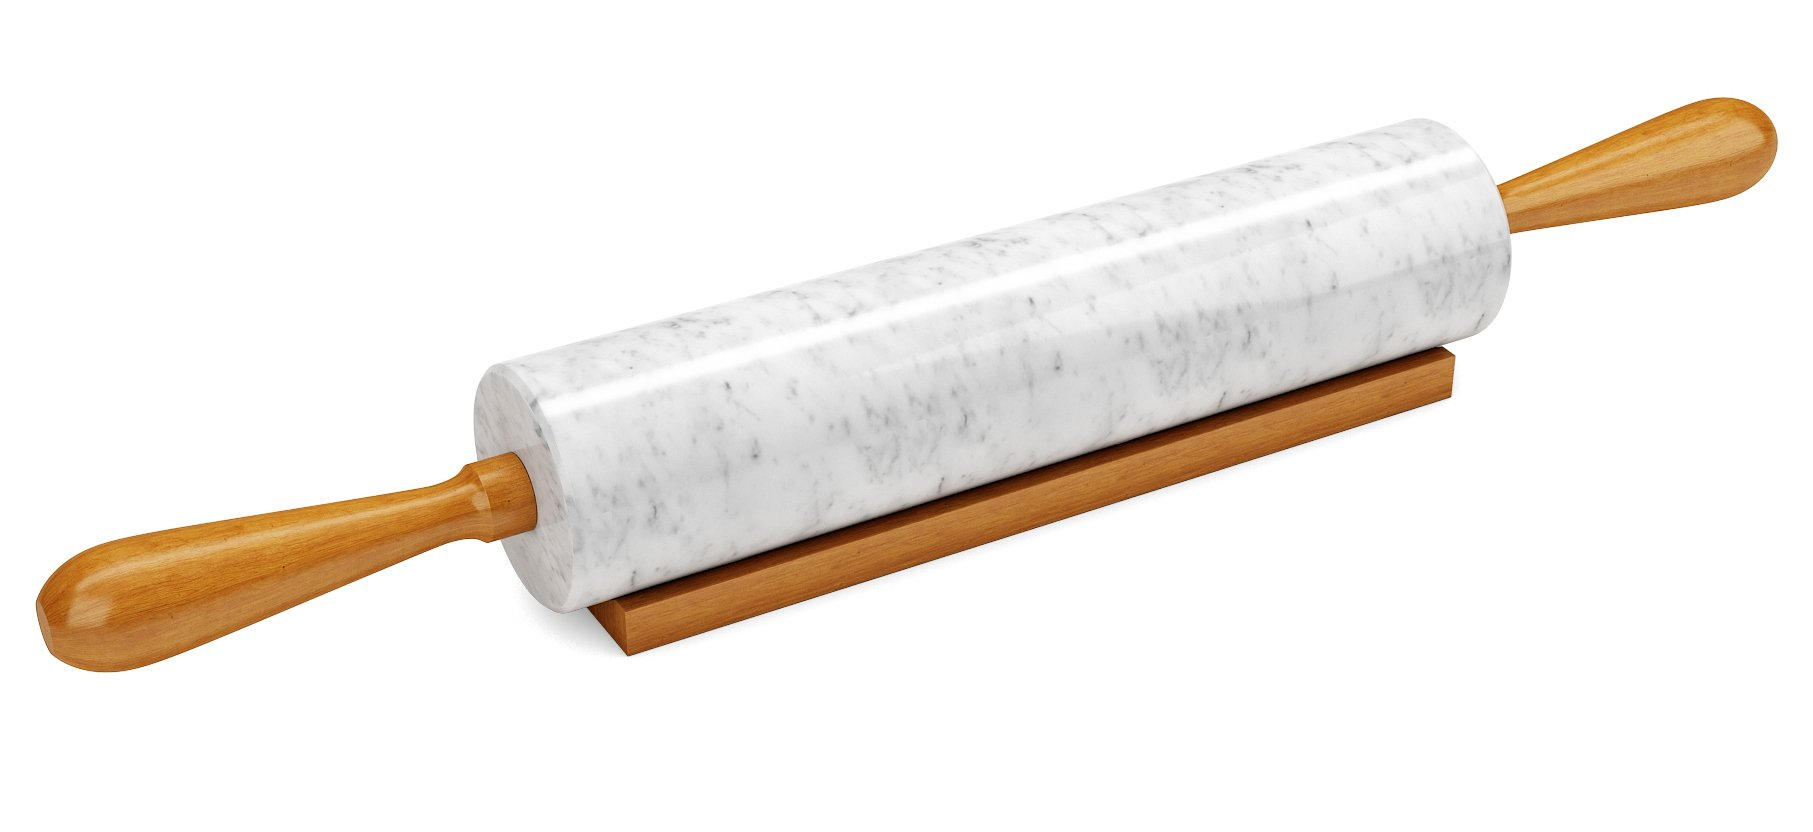 Miko Marble Stone Rolling Pin, 18 inch With Smooth Wooden Handles For Easy Grip And Includes Wooden Cradle